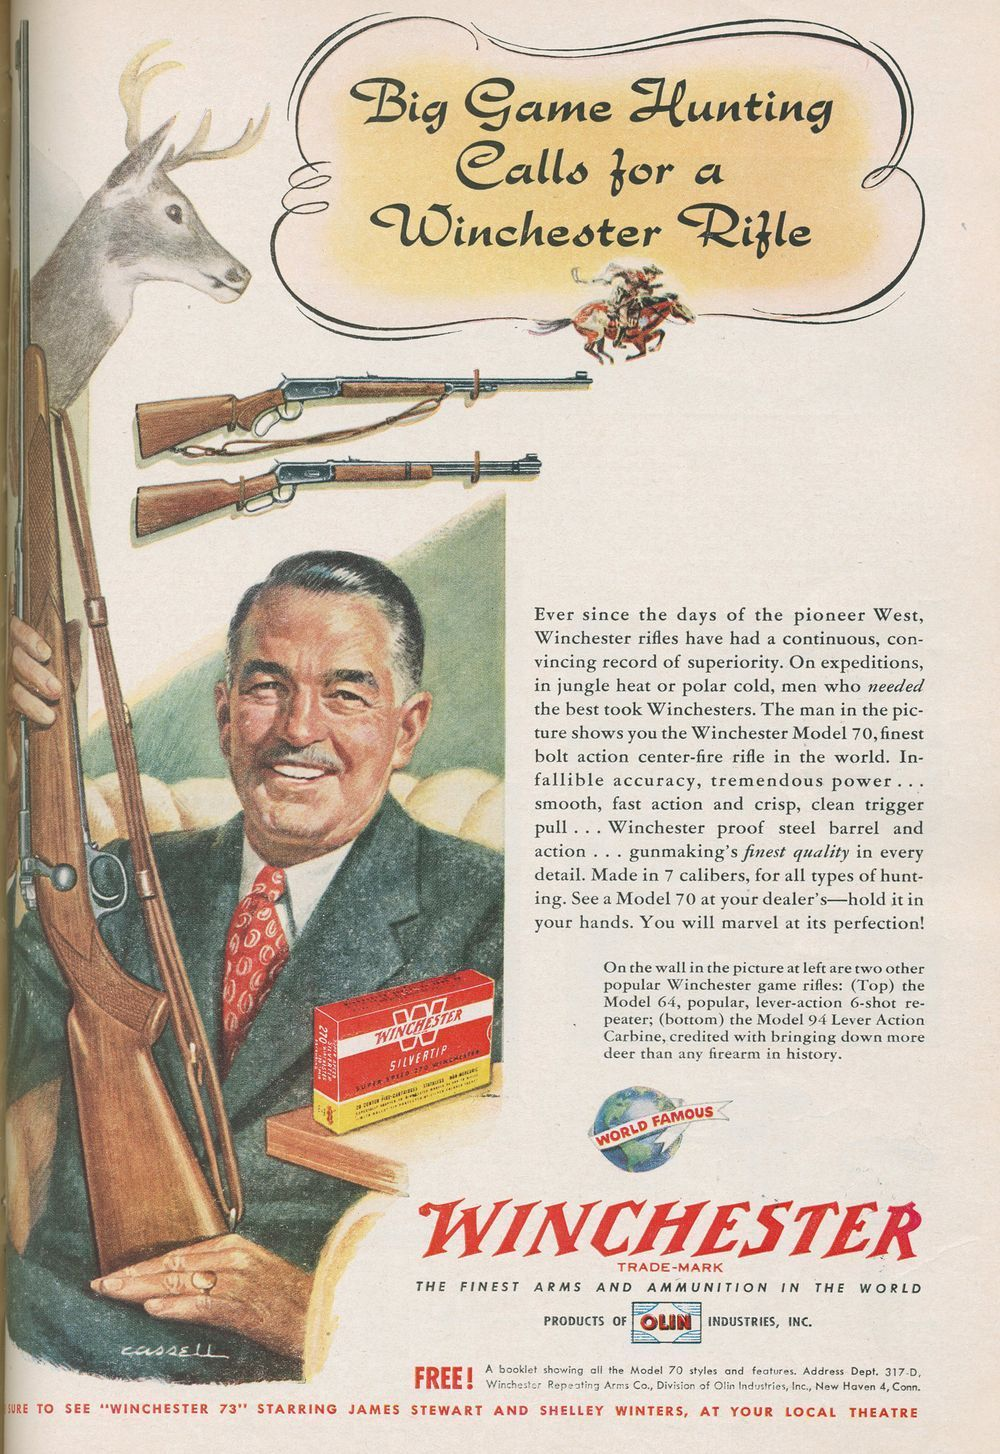 Winchester Model 70 rifle advertisement September 1950